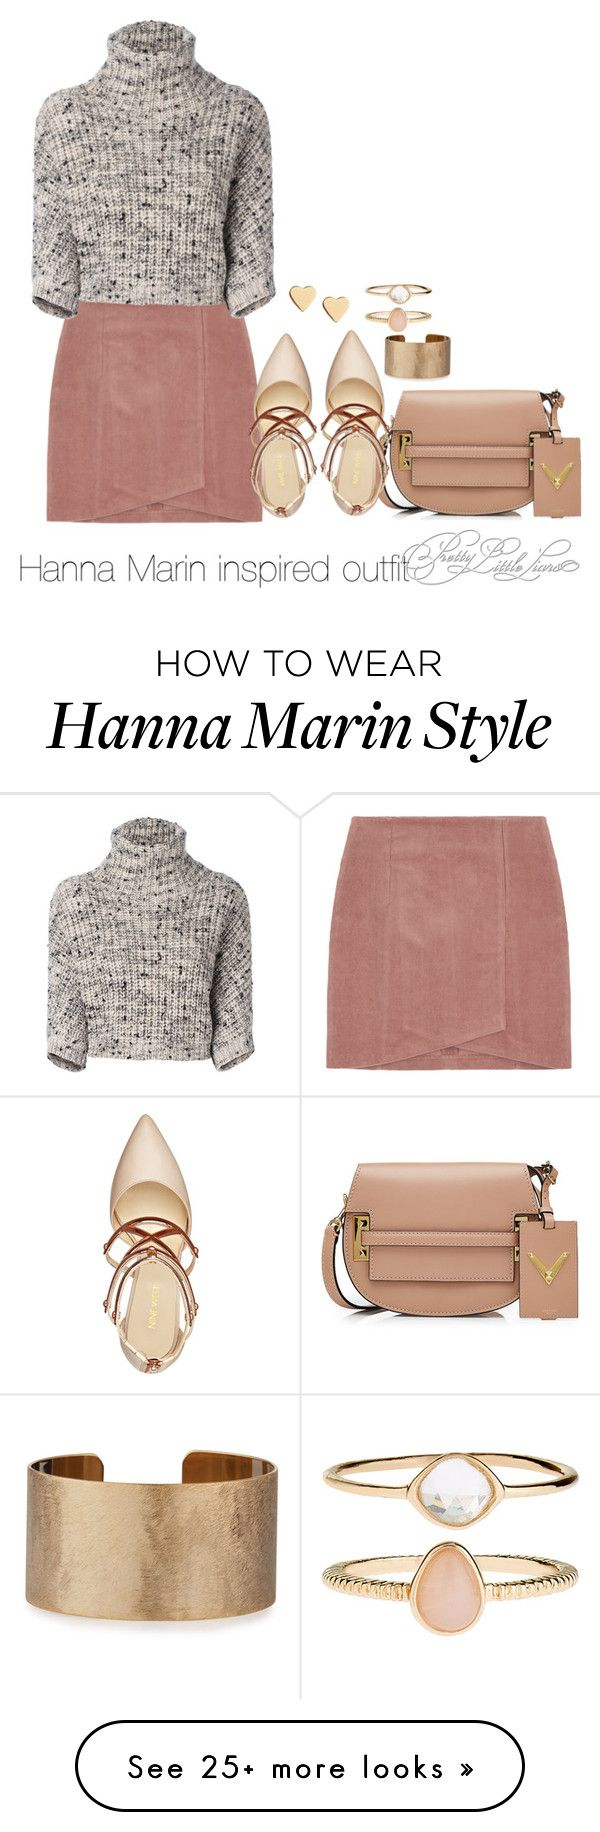 """""""Hanna Marin inspired outfit/PLL"""" by tvdsarahmichele on Polyvore featuring Brunello Cucinelli, Valentino, Nine West, Lipsy, Panacea and Accessorize"""